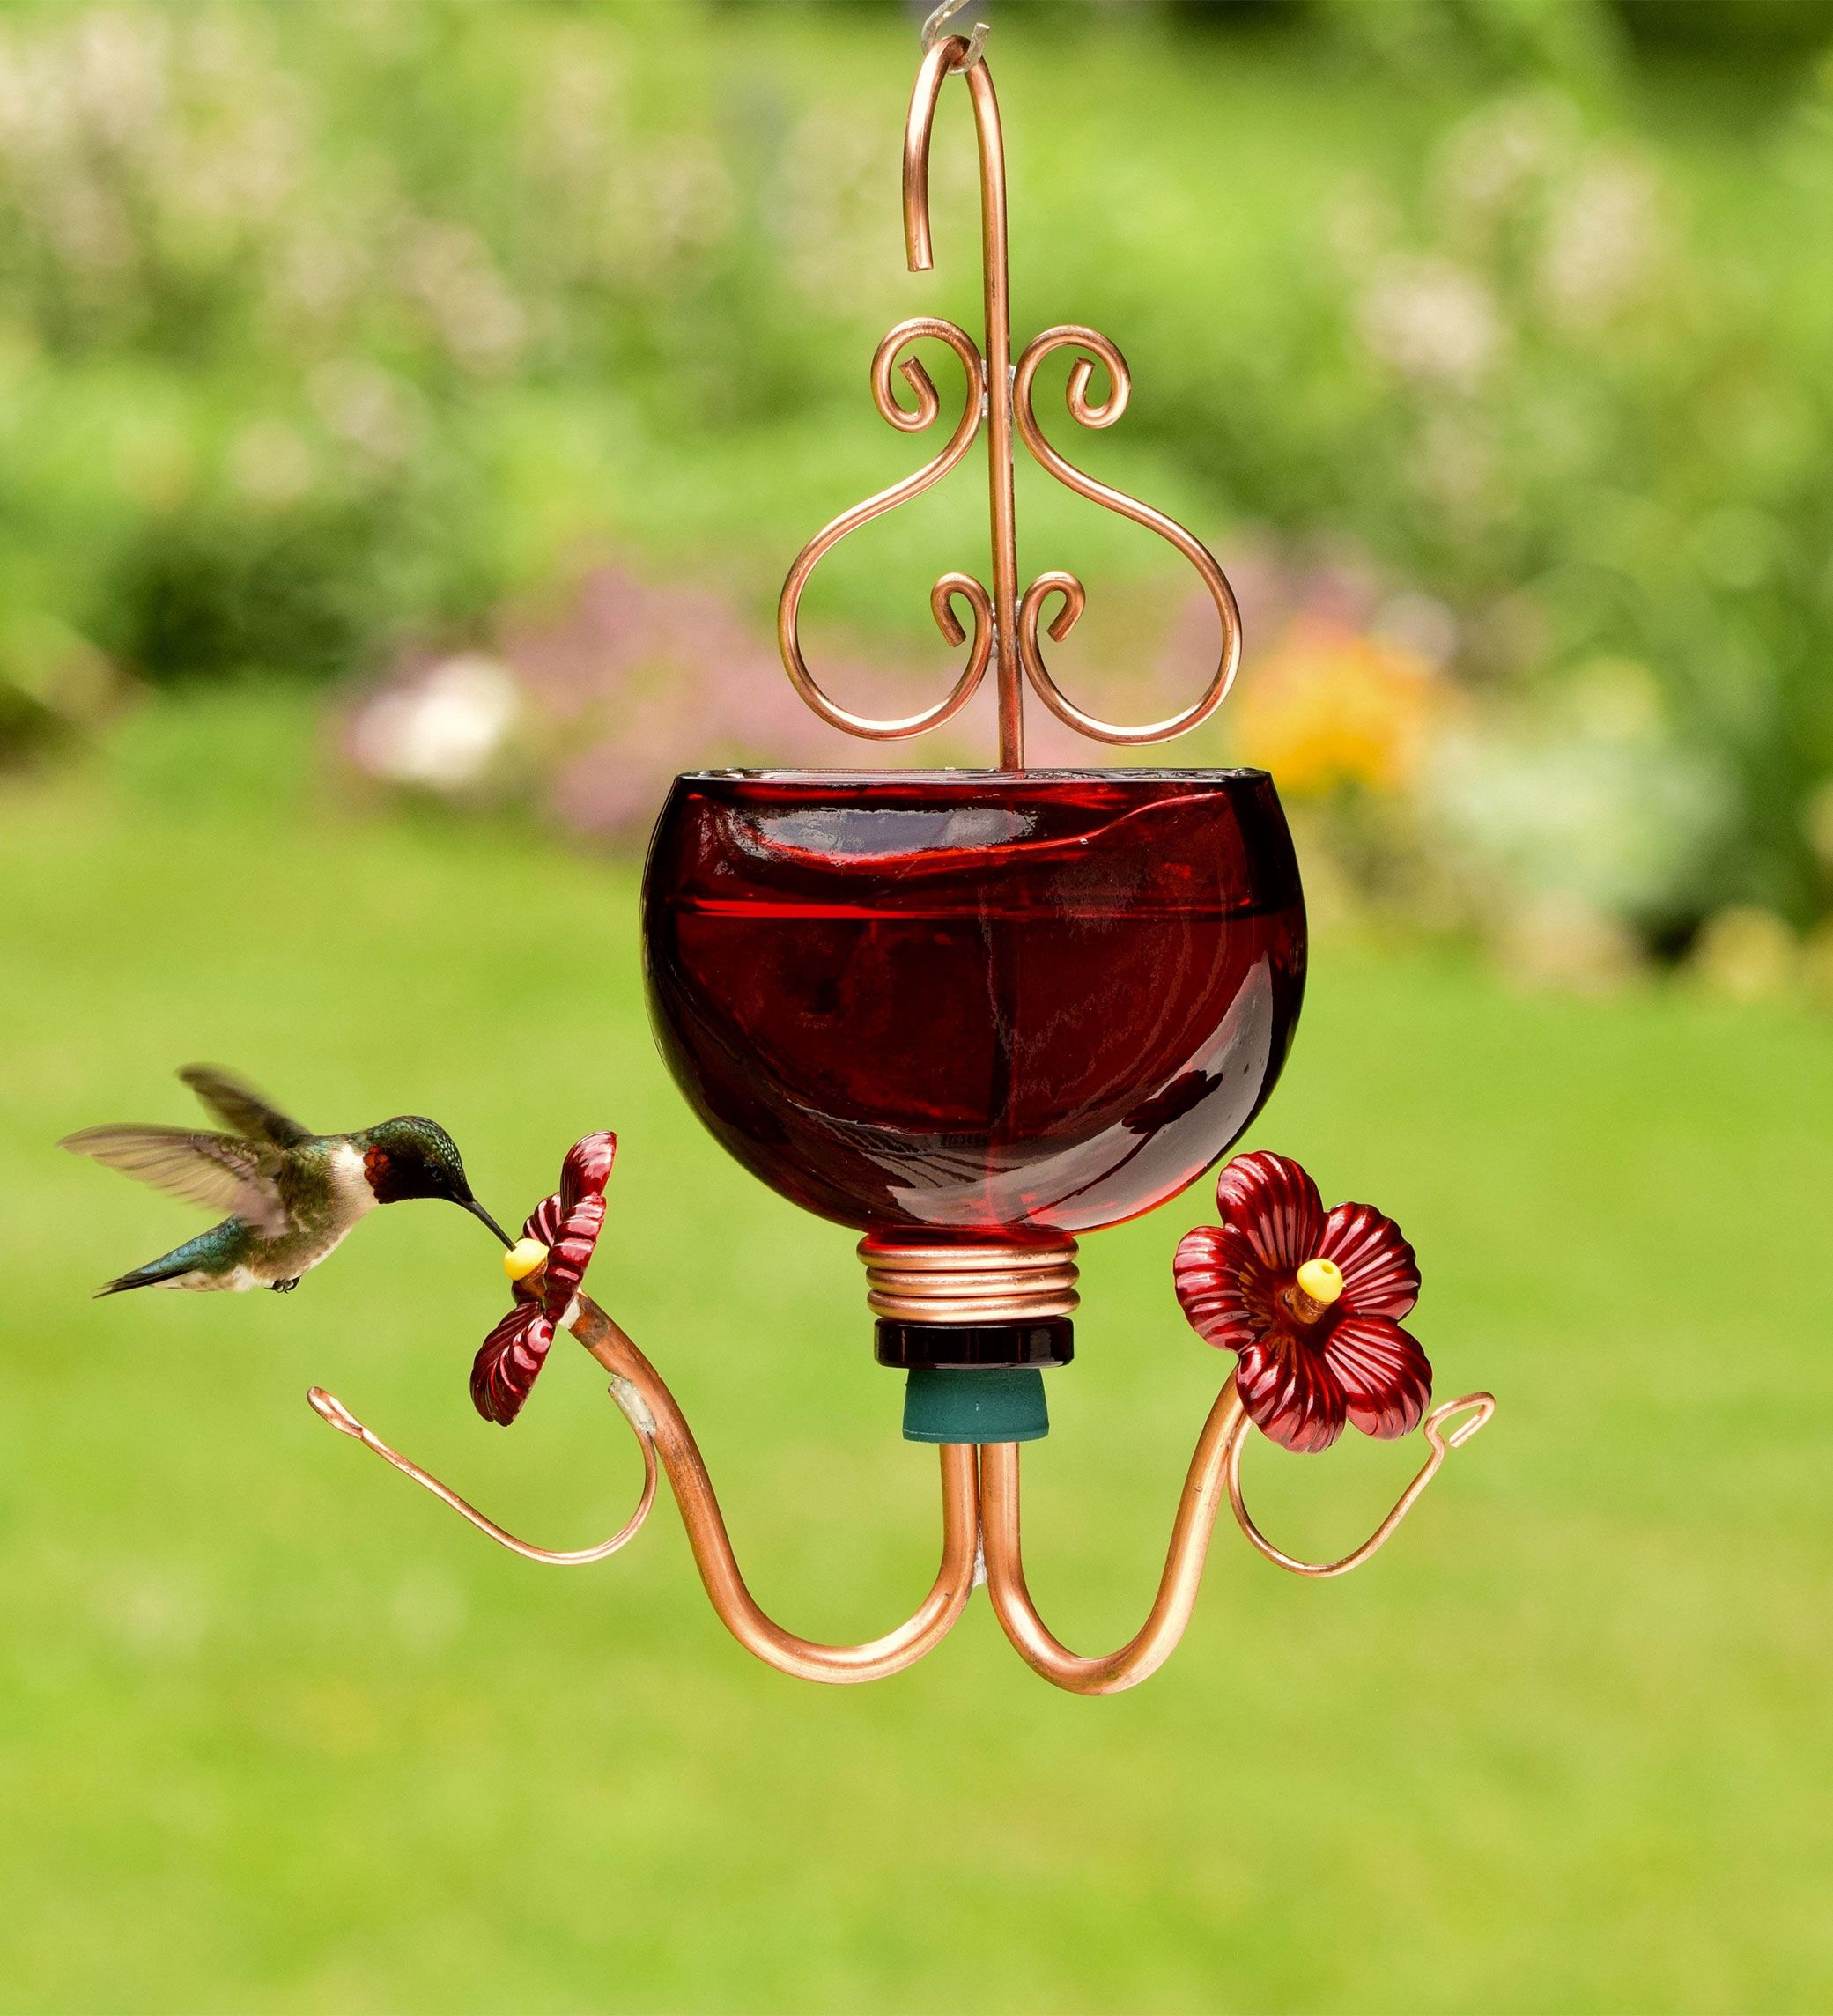 products unique globe best and feeders product bird yellow blown home hummingbirds hummingbird glass premium reviews of hand pet rave red decorative with by birds nectar ounces feeder natures